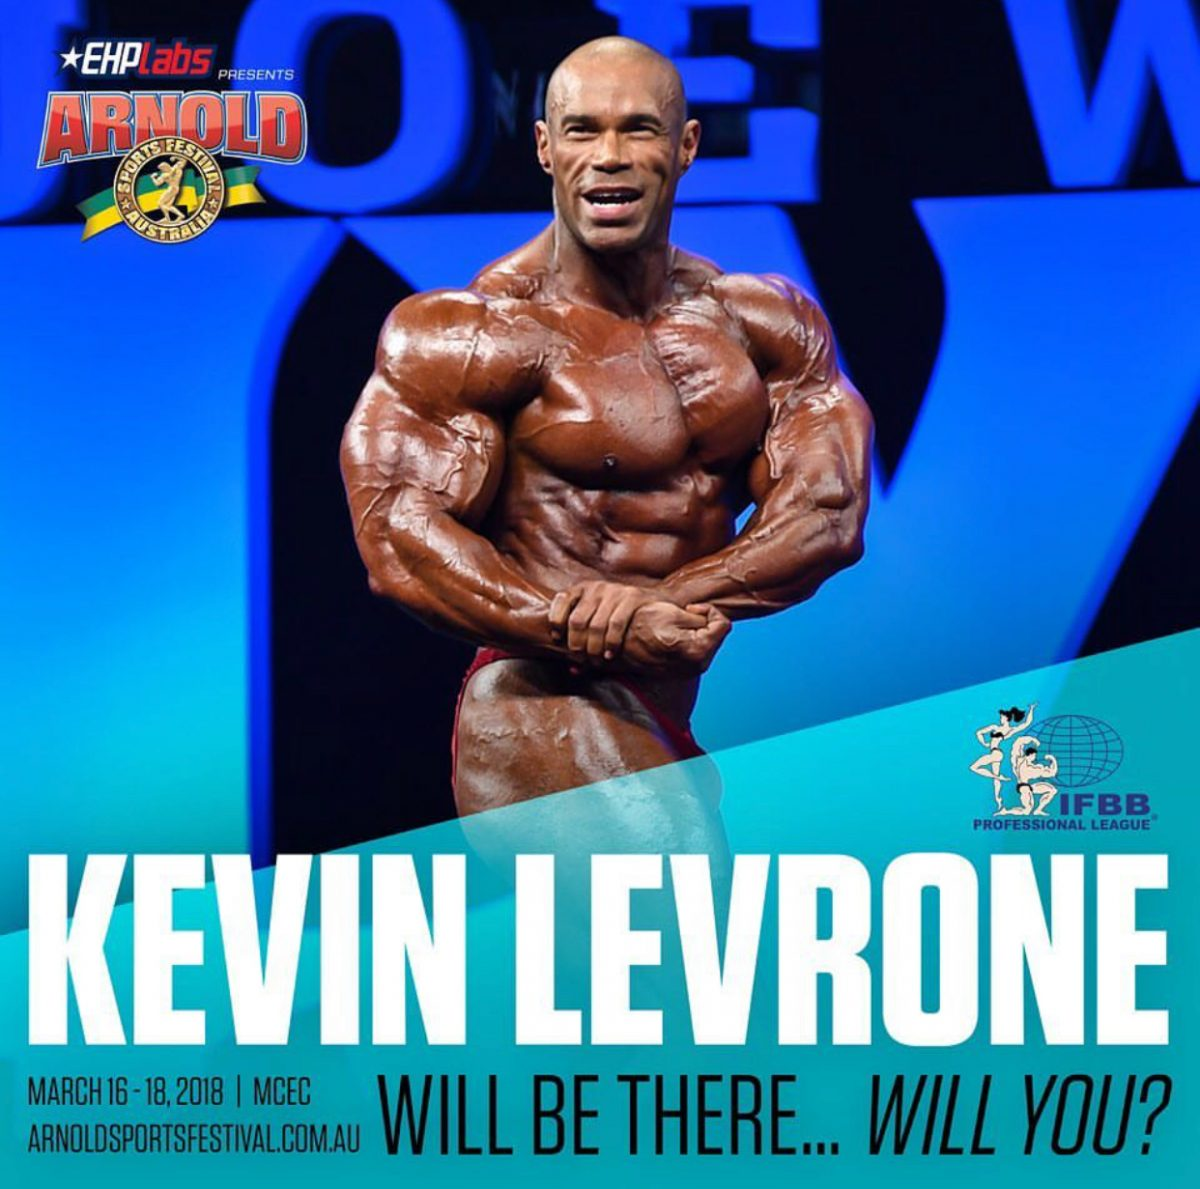 Cedric McMillan FTW Arnold Classic / Kevin Levrone HUGE!